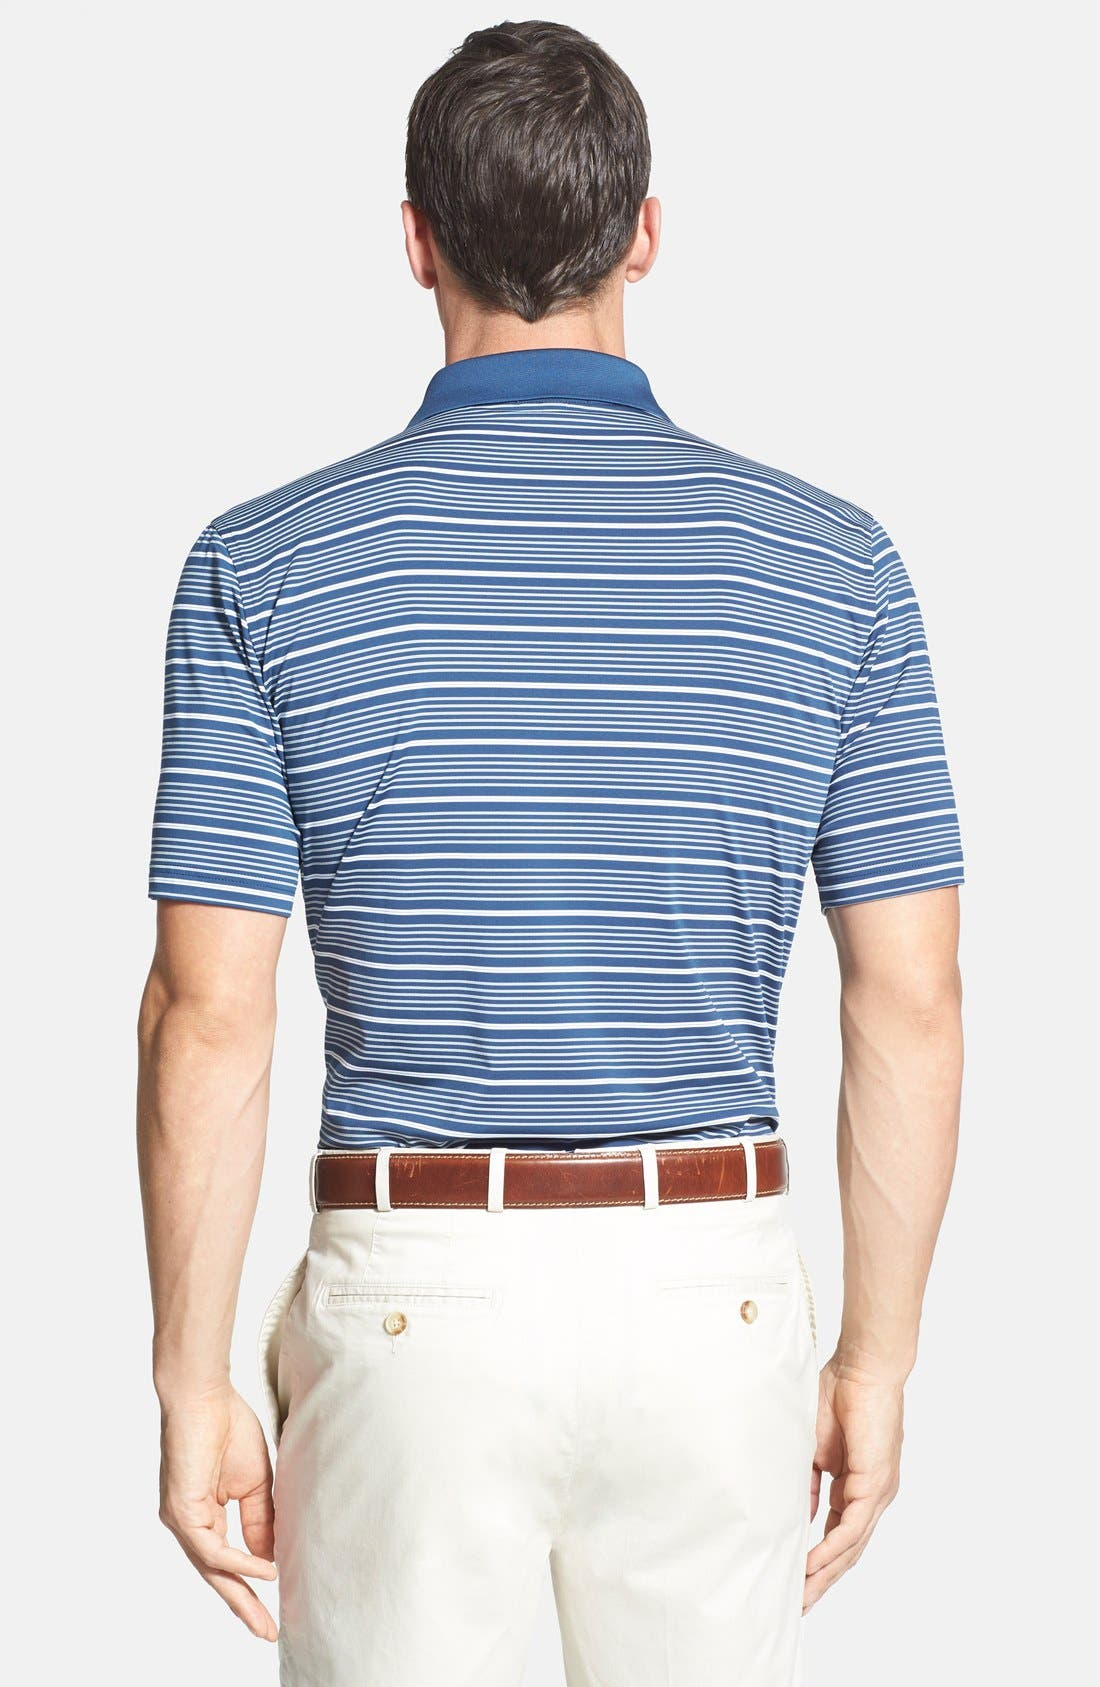 'Staley' Moisture Wicking Polo,                             Alternate thumbnail 5, color,                             402